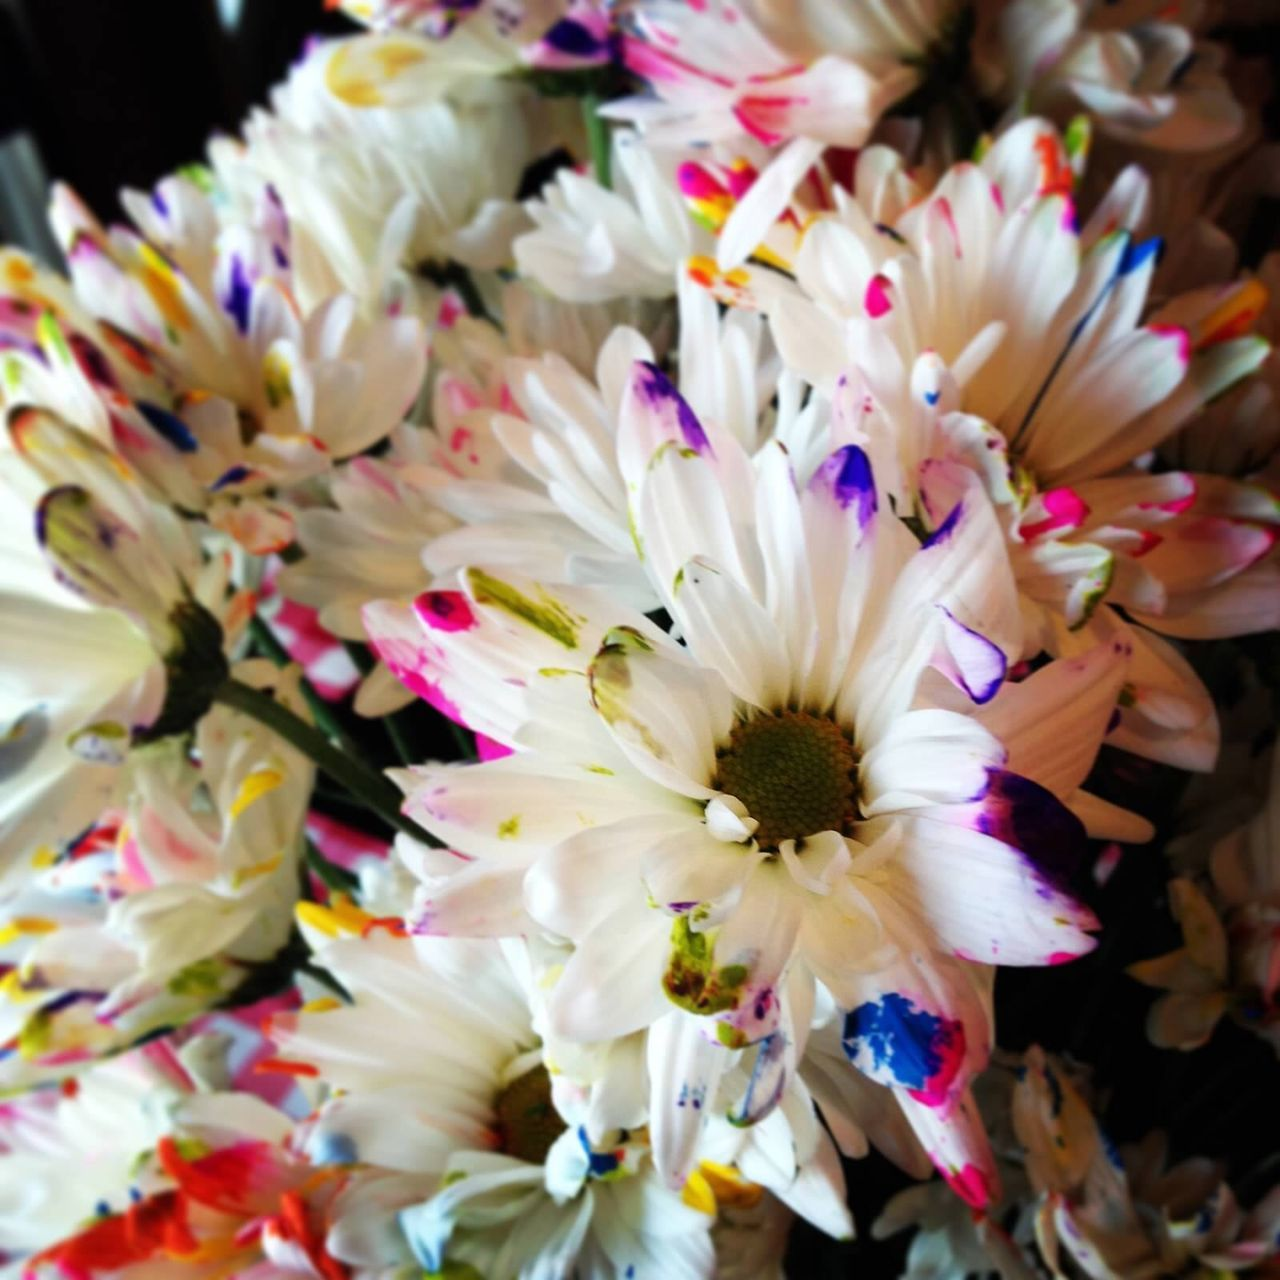 flower, petal, fragility, beauty in nature, nature, close-up, freshness, flower head, no people, day, outdoors